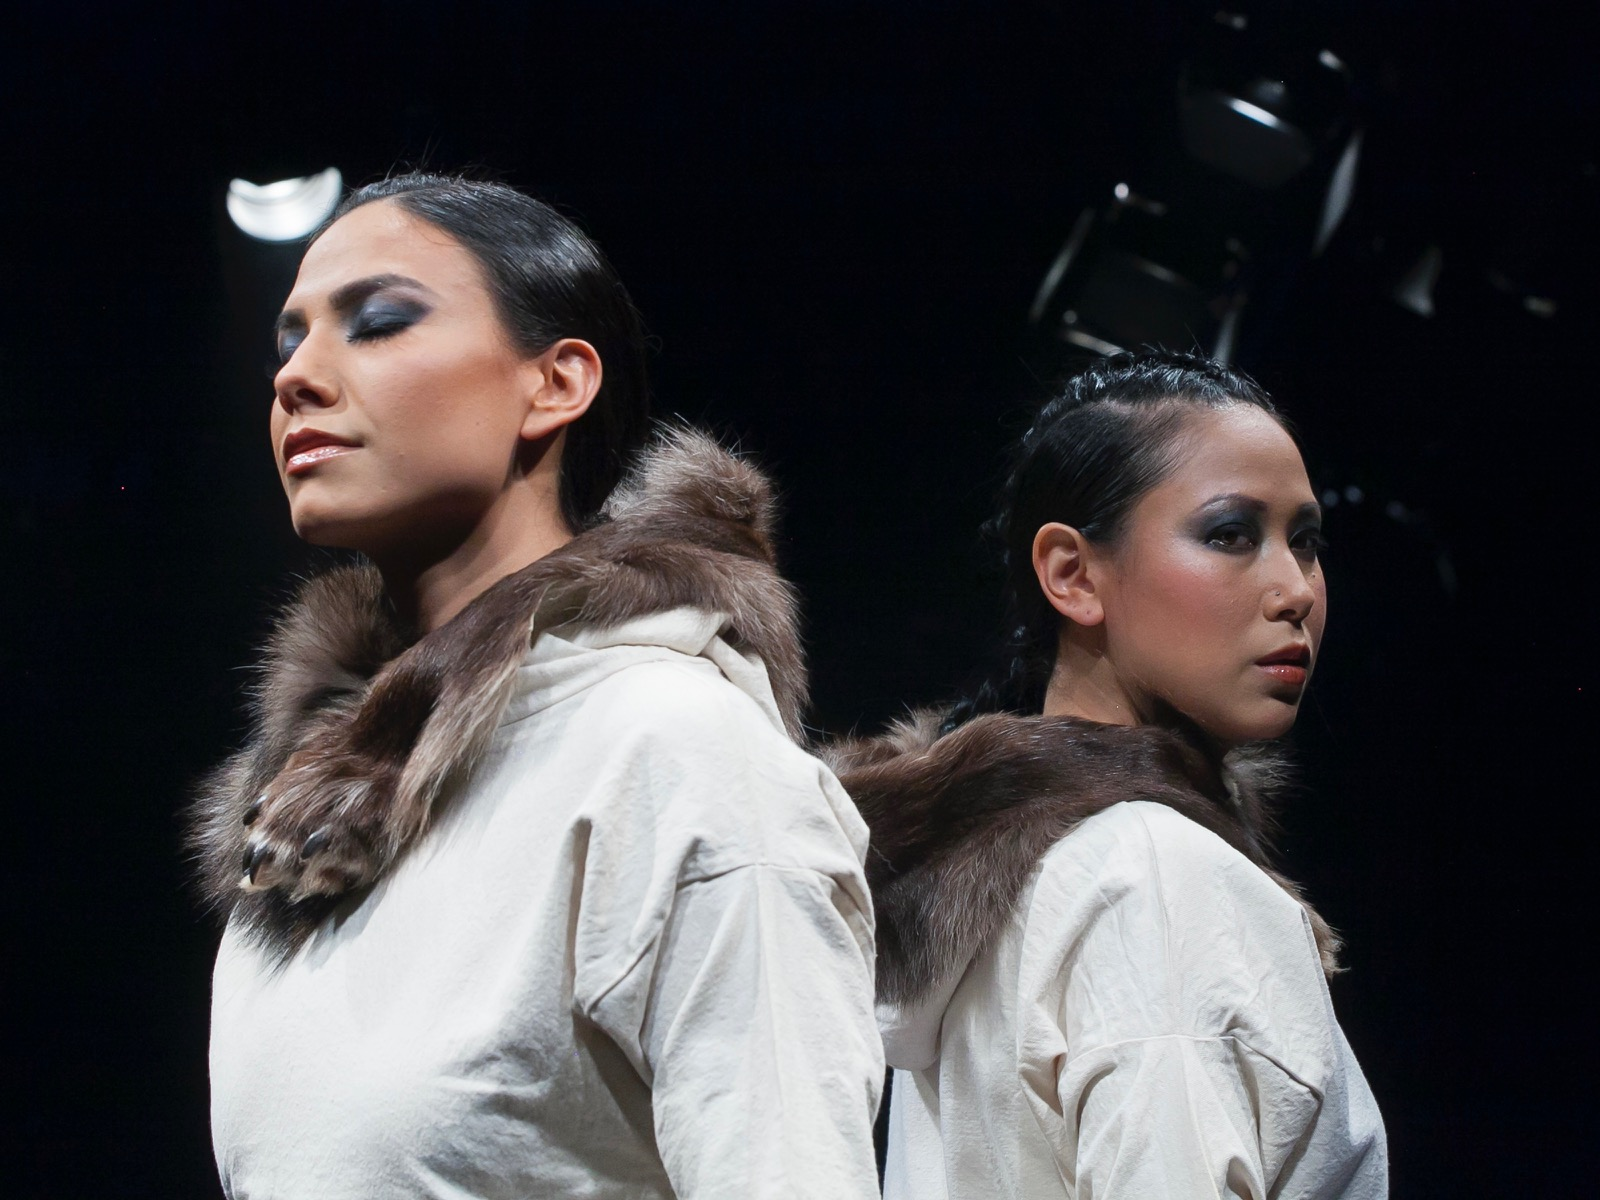 Riley Kucheran: Indigenous artists shine at inaugural fashion event